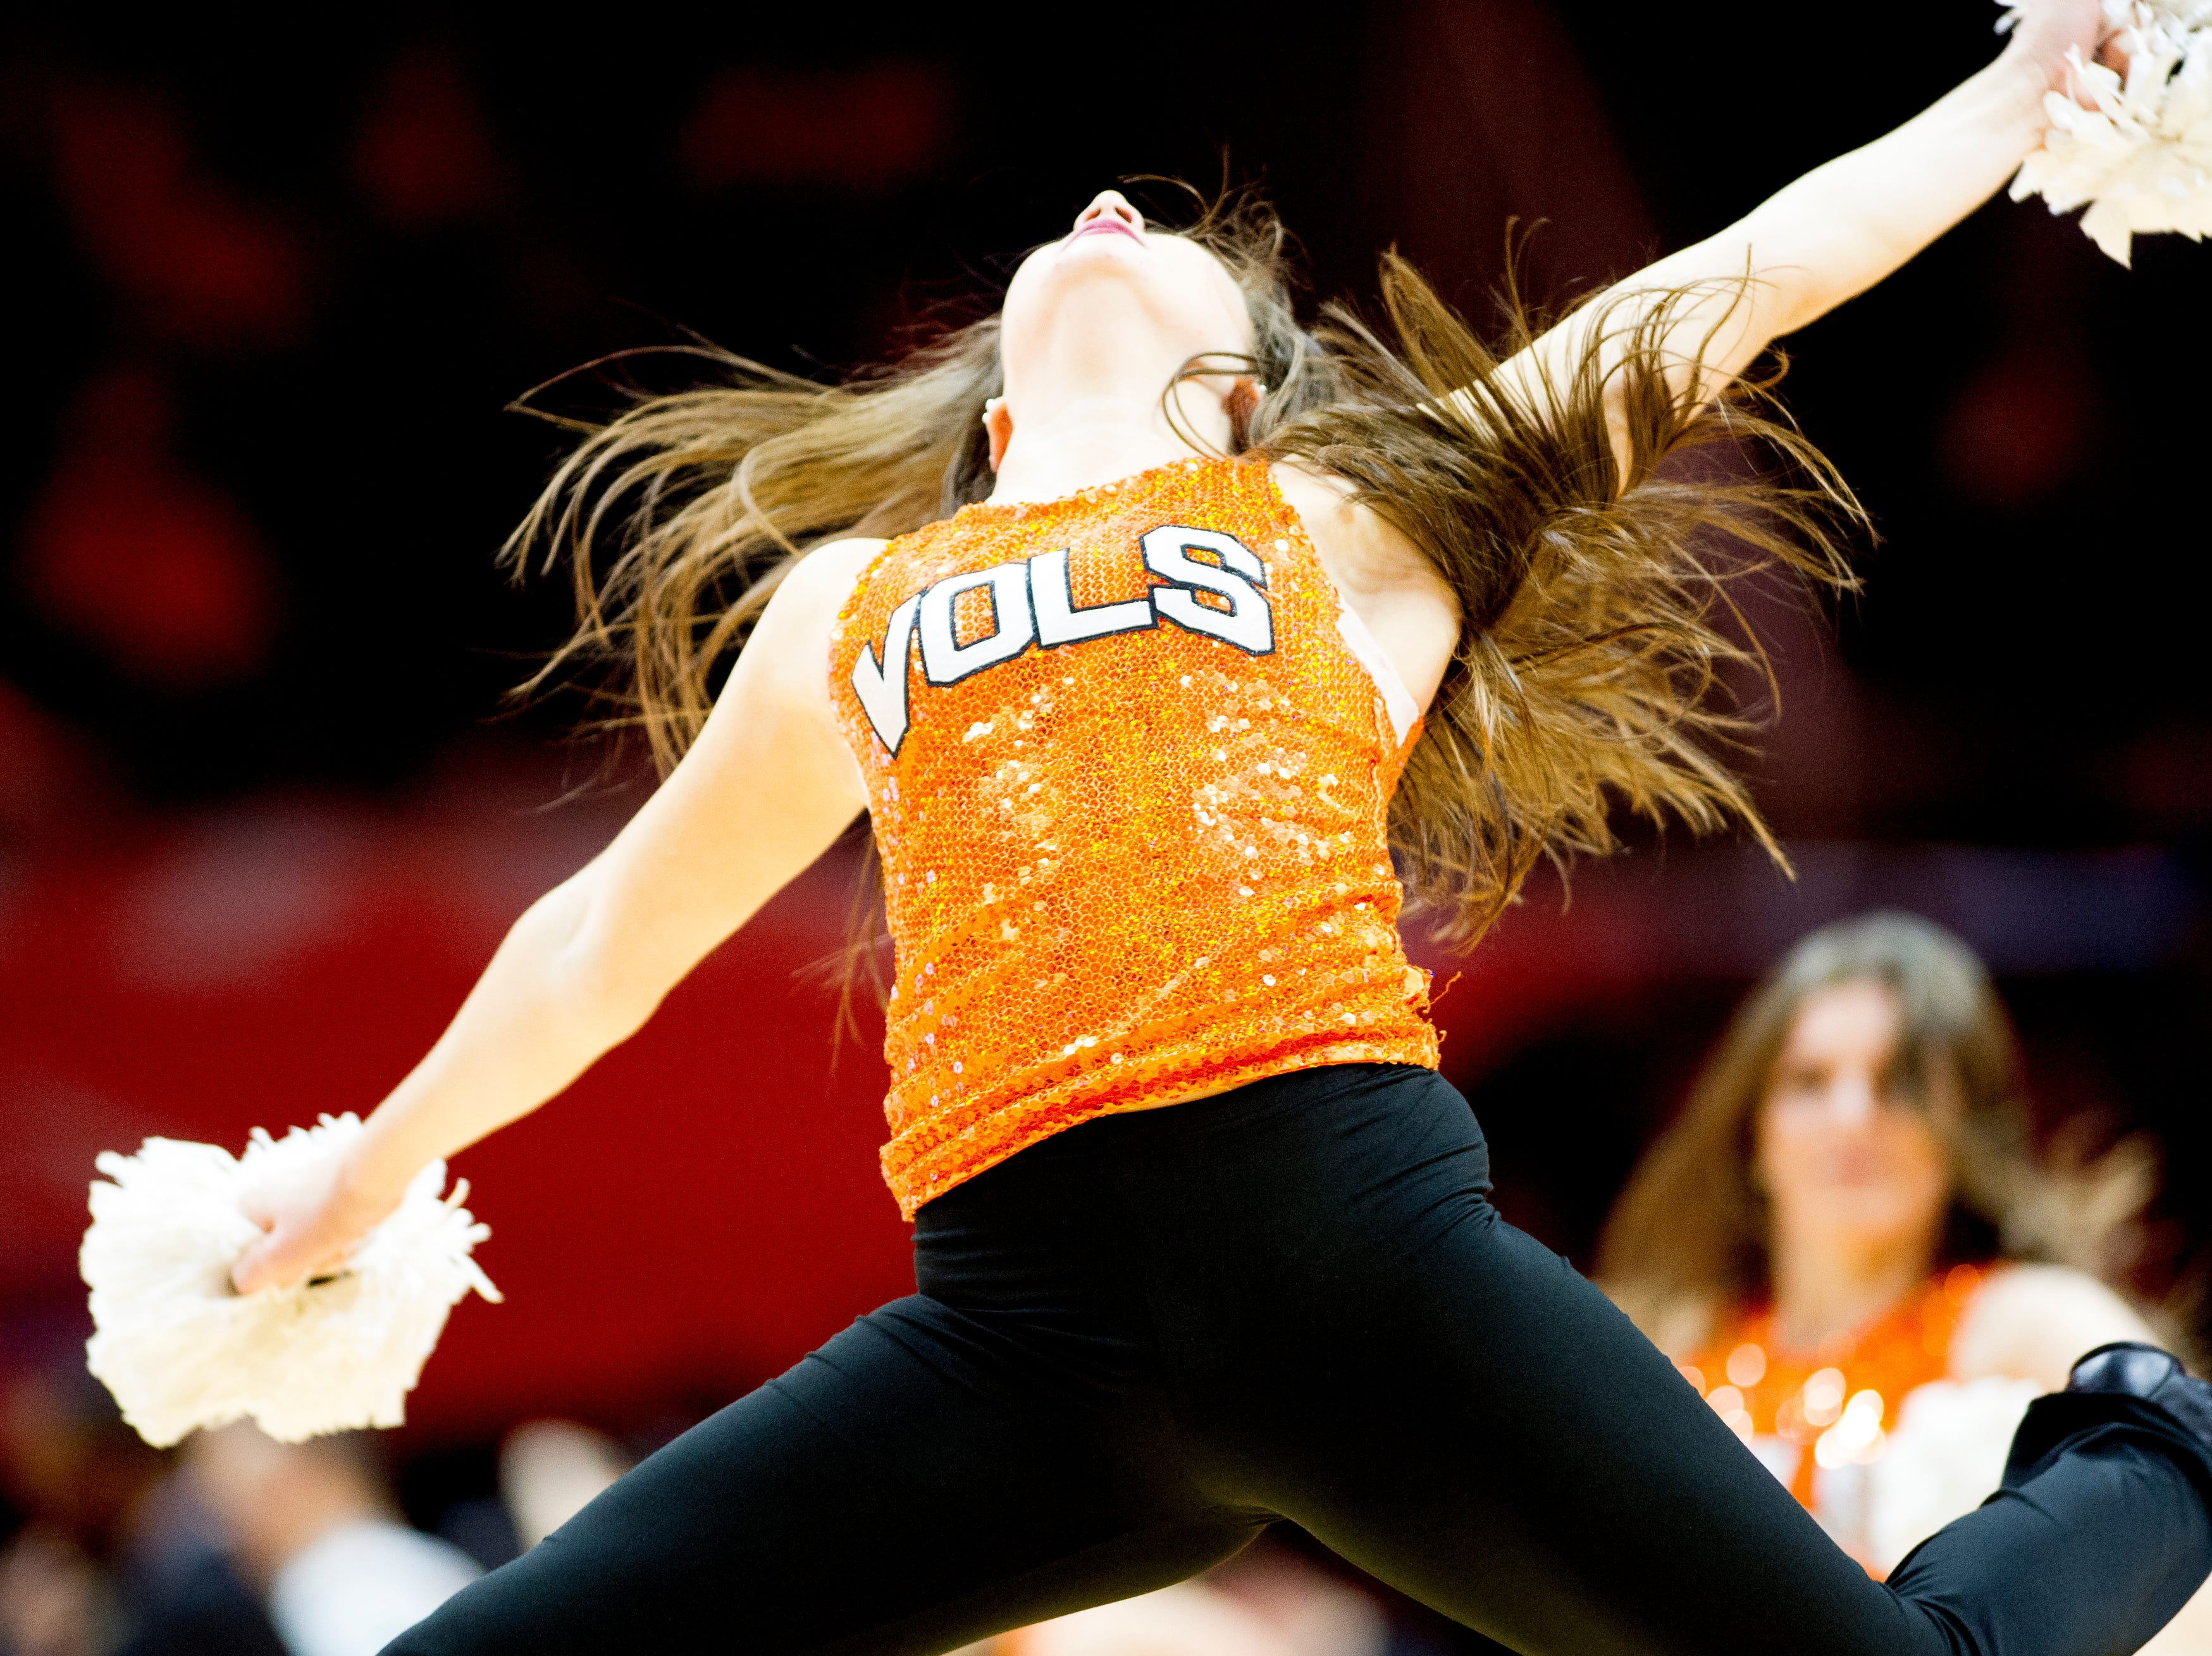 A Tennessee Dance Team member performs during a game between the Tennessee Lady Vols and Murray State at Thompson-Boling Arena in Knoxville, Tennessee on Friday, December 28, 2018.